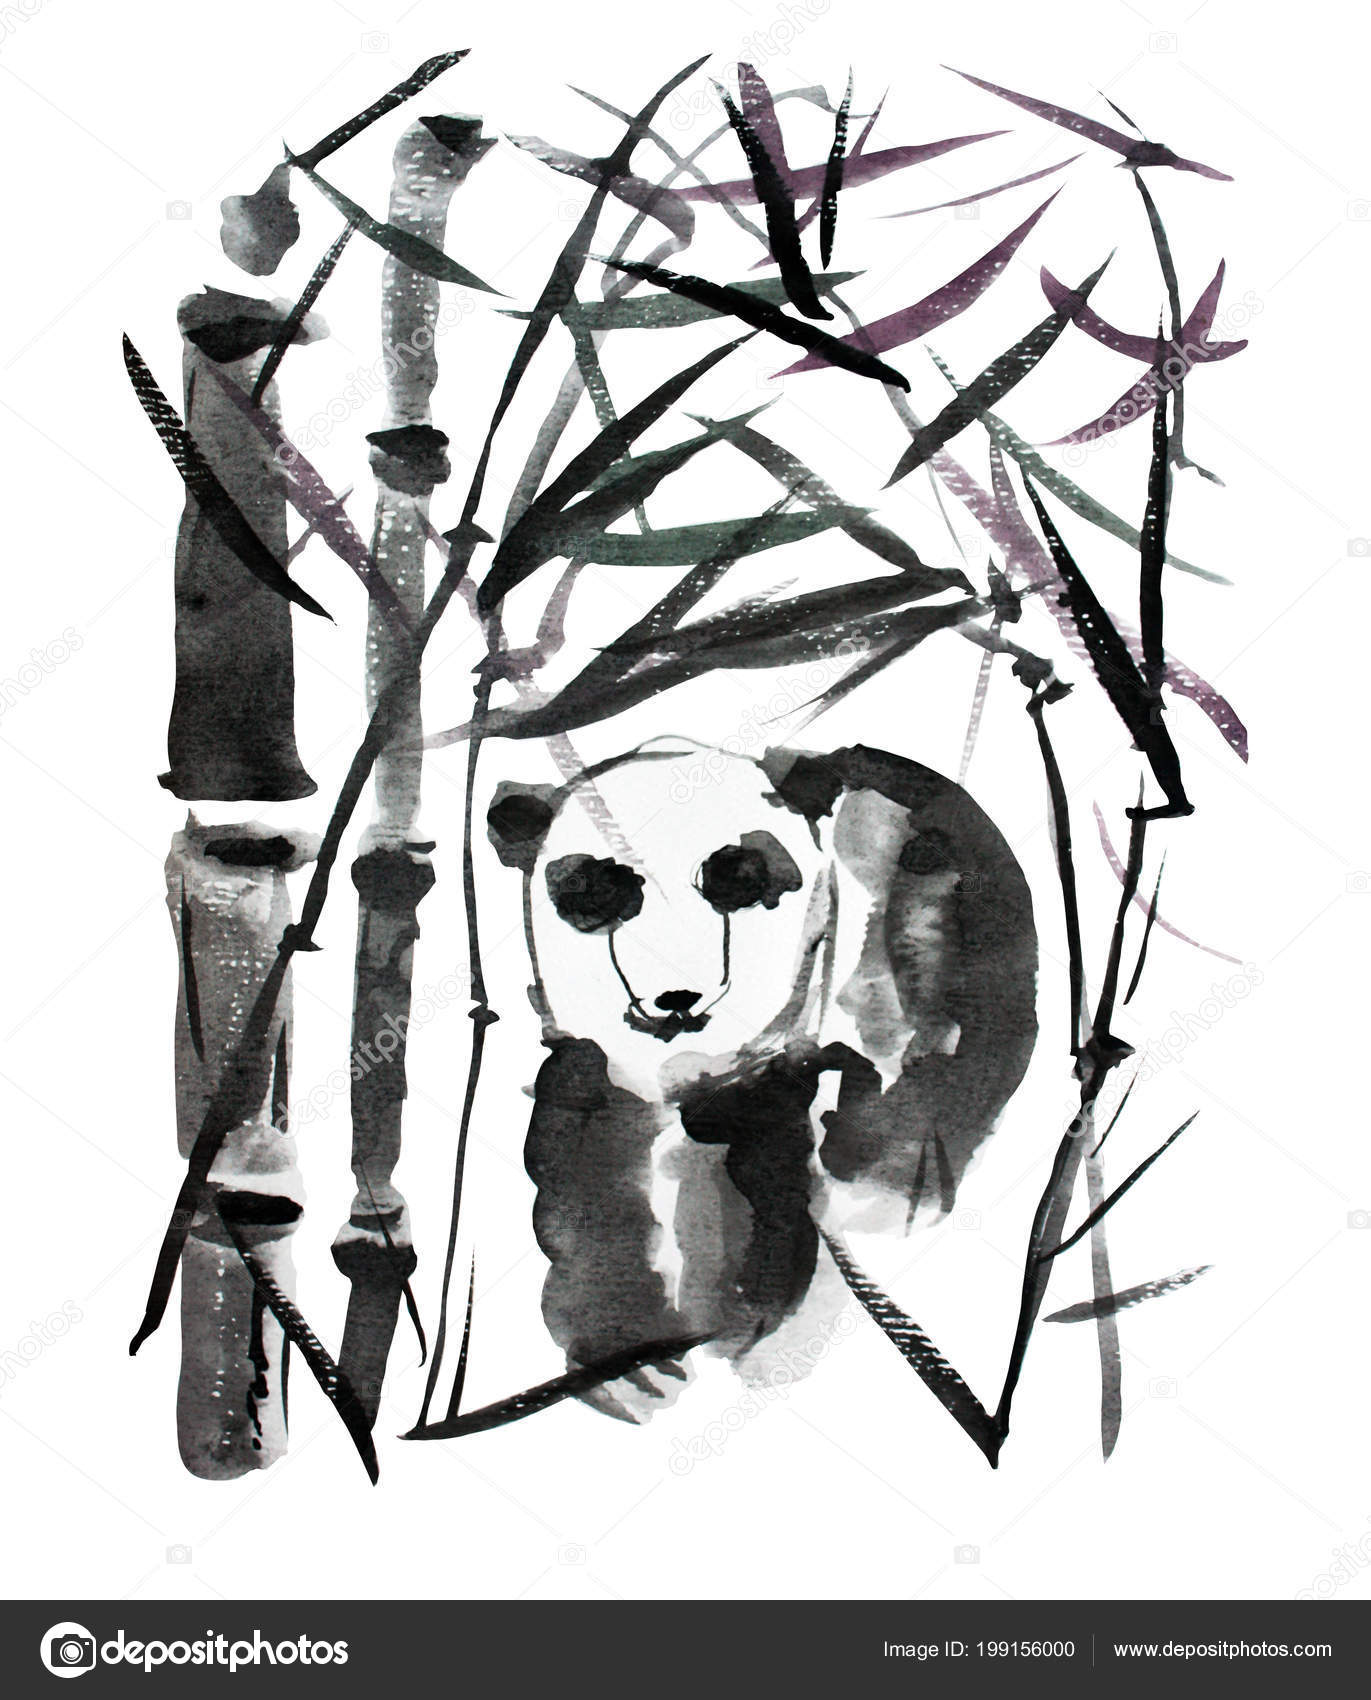 hight resolution of decorative watercolor panda bear and bamboo plants clipart design elements can be used for cards invitations banners posters print design